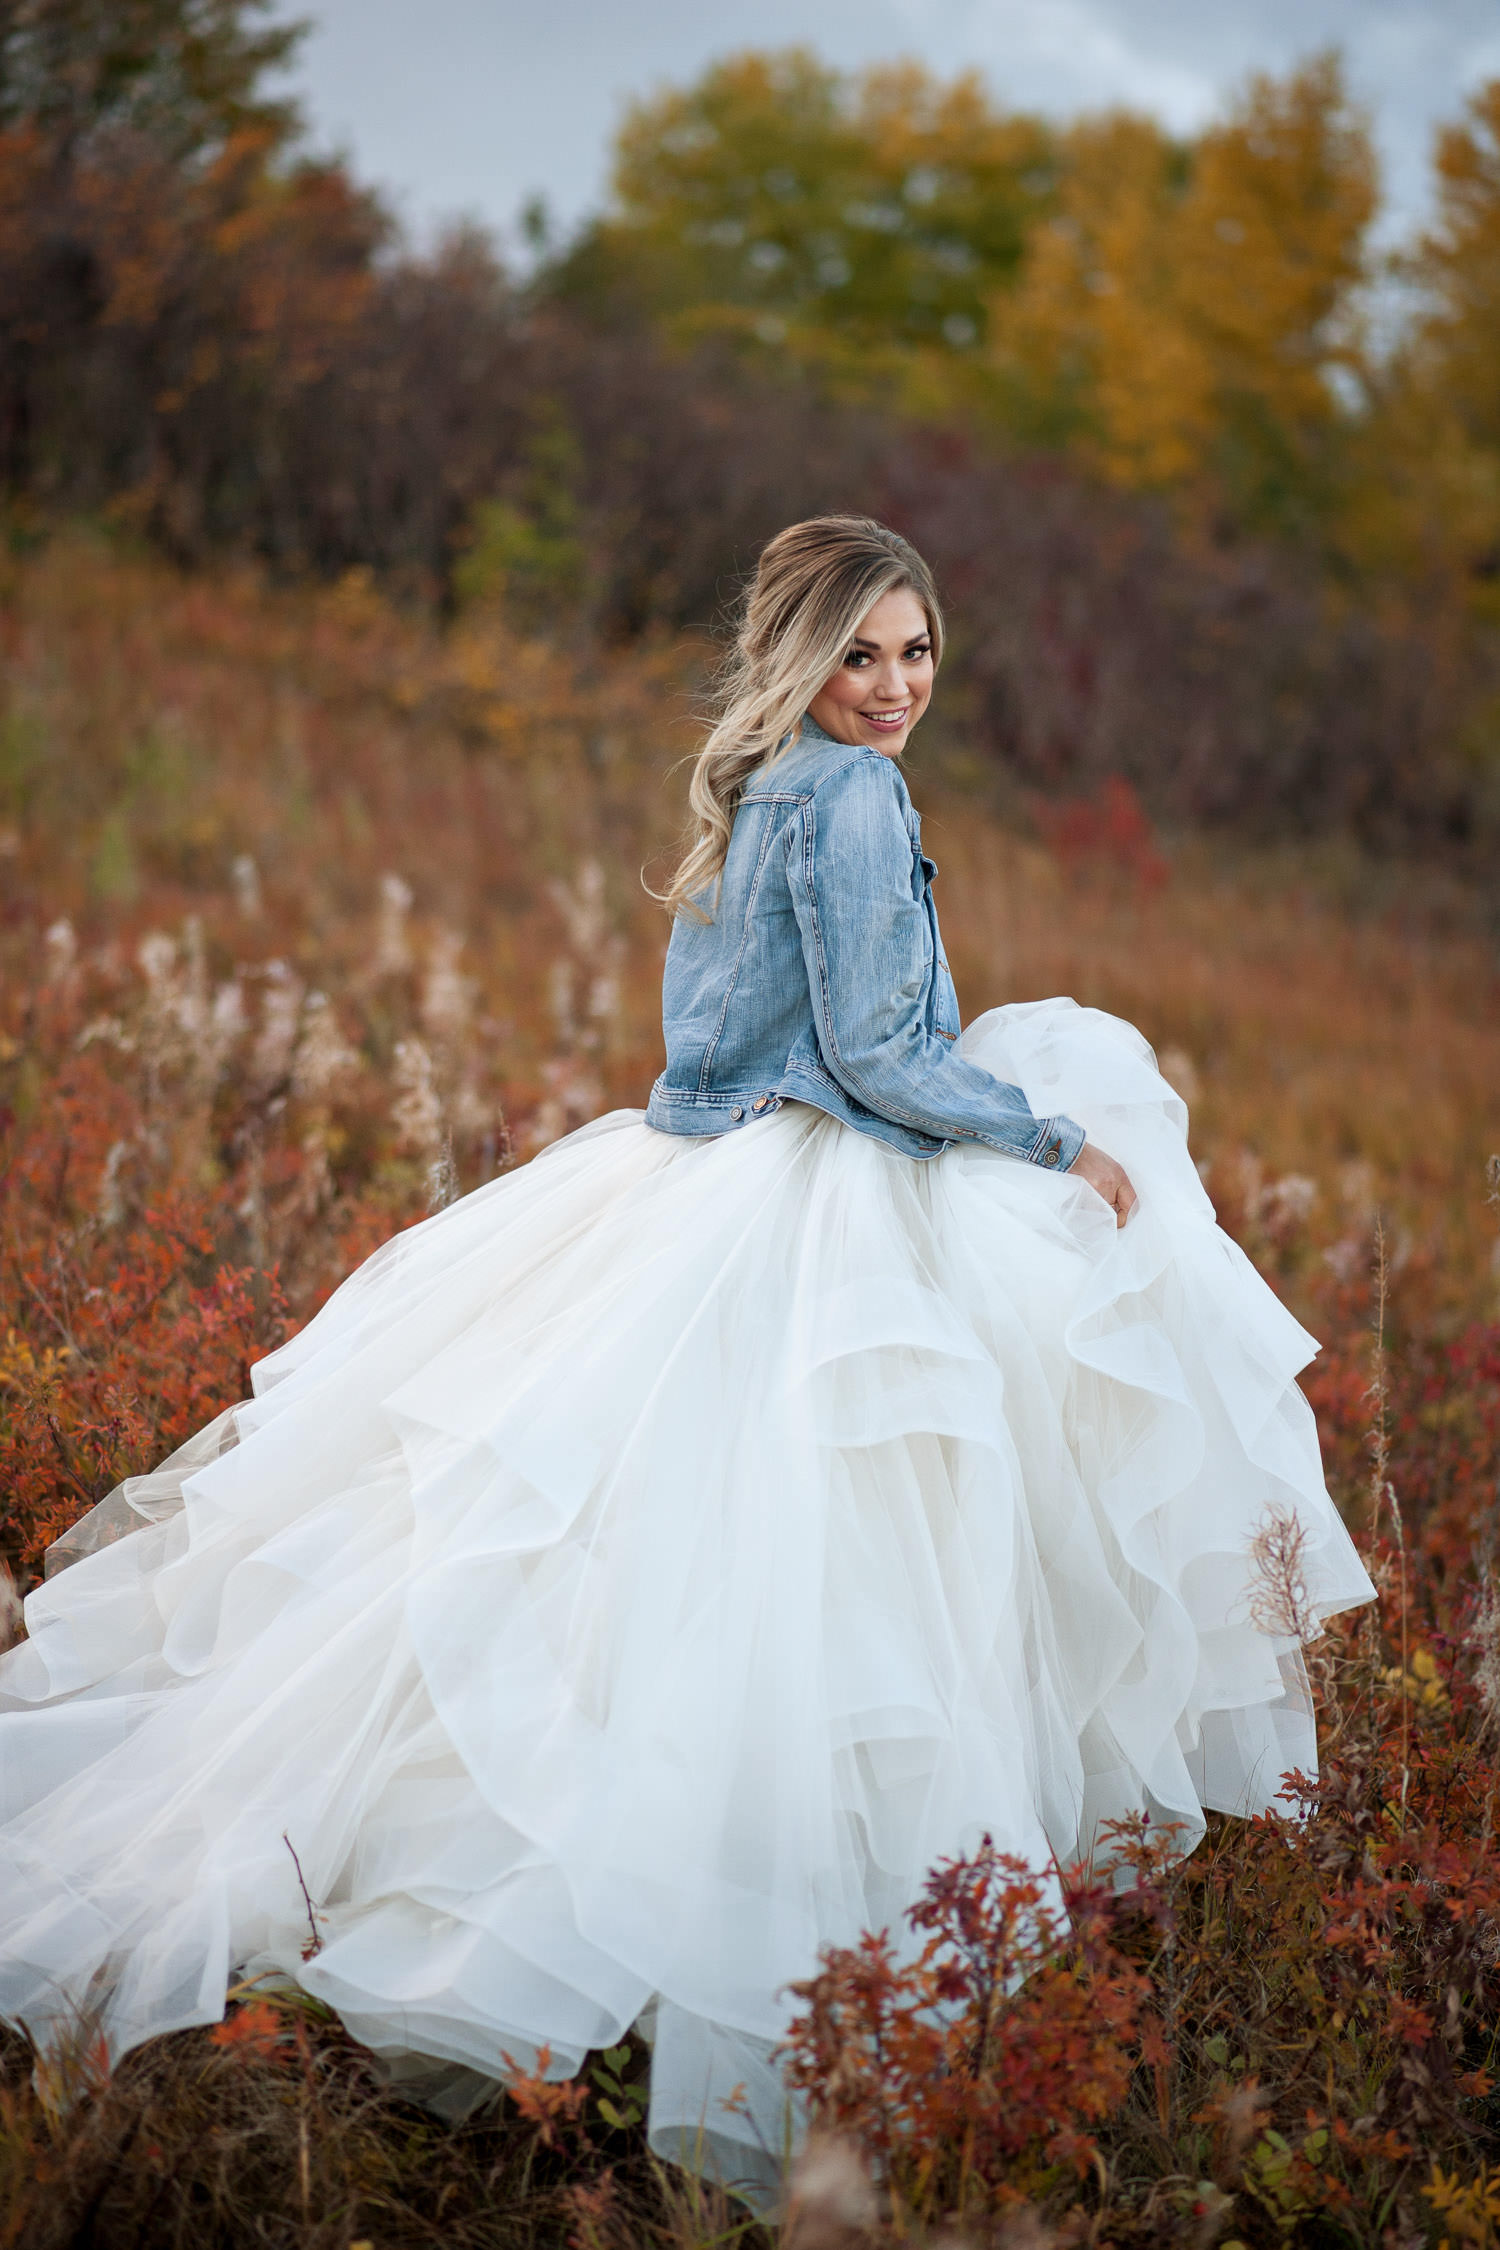 Denim and Hayley Paige fall bridal inspiration captured by Tara Whittaker Photography